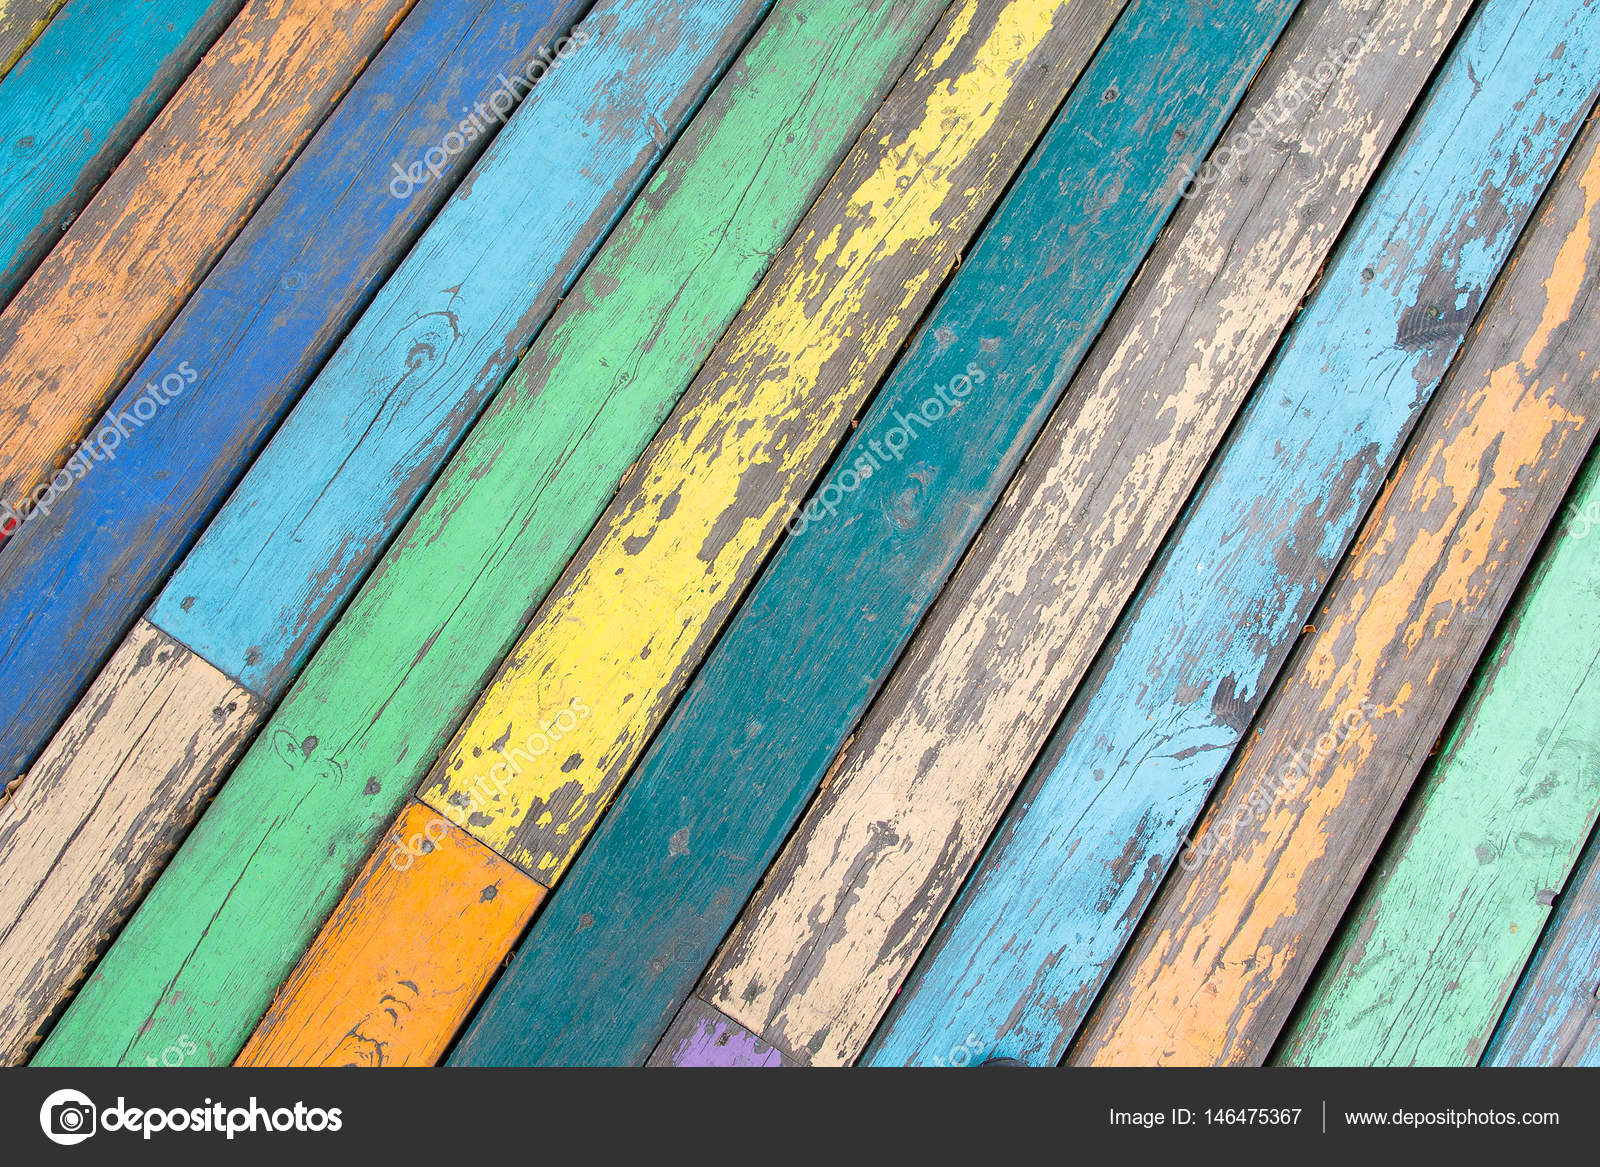 Multi Colored Wooden Floor Boards Backgrounds And Textures